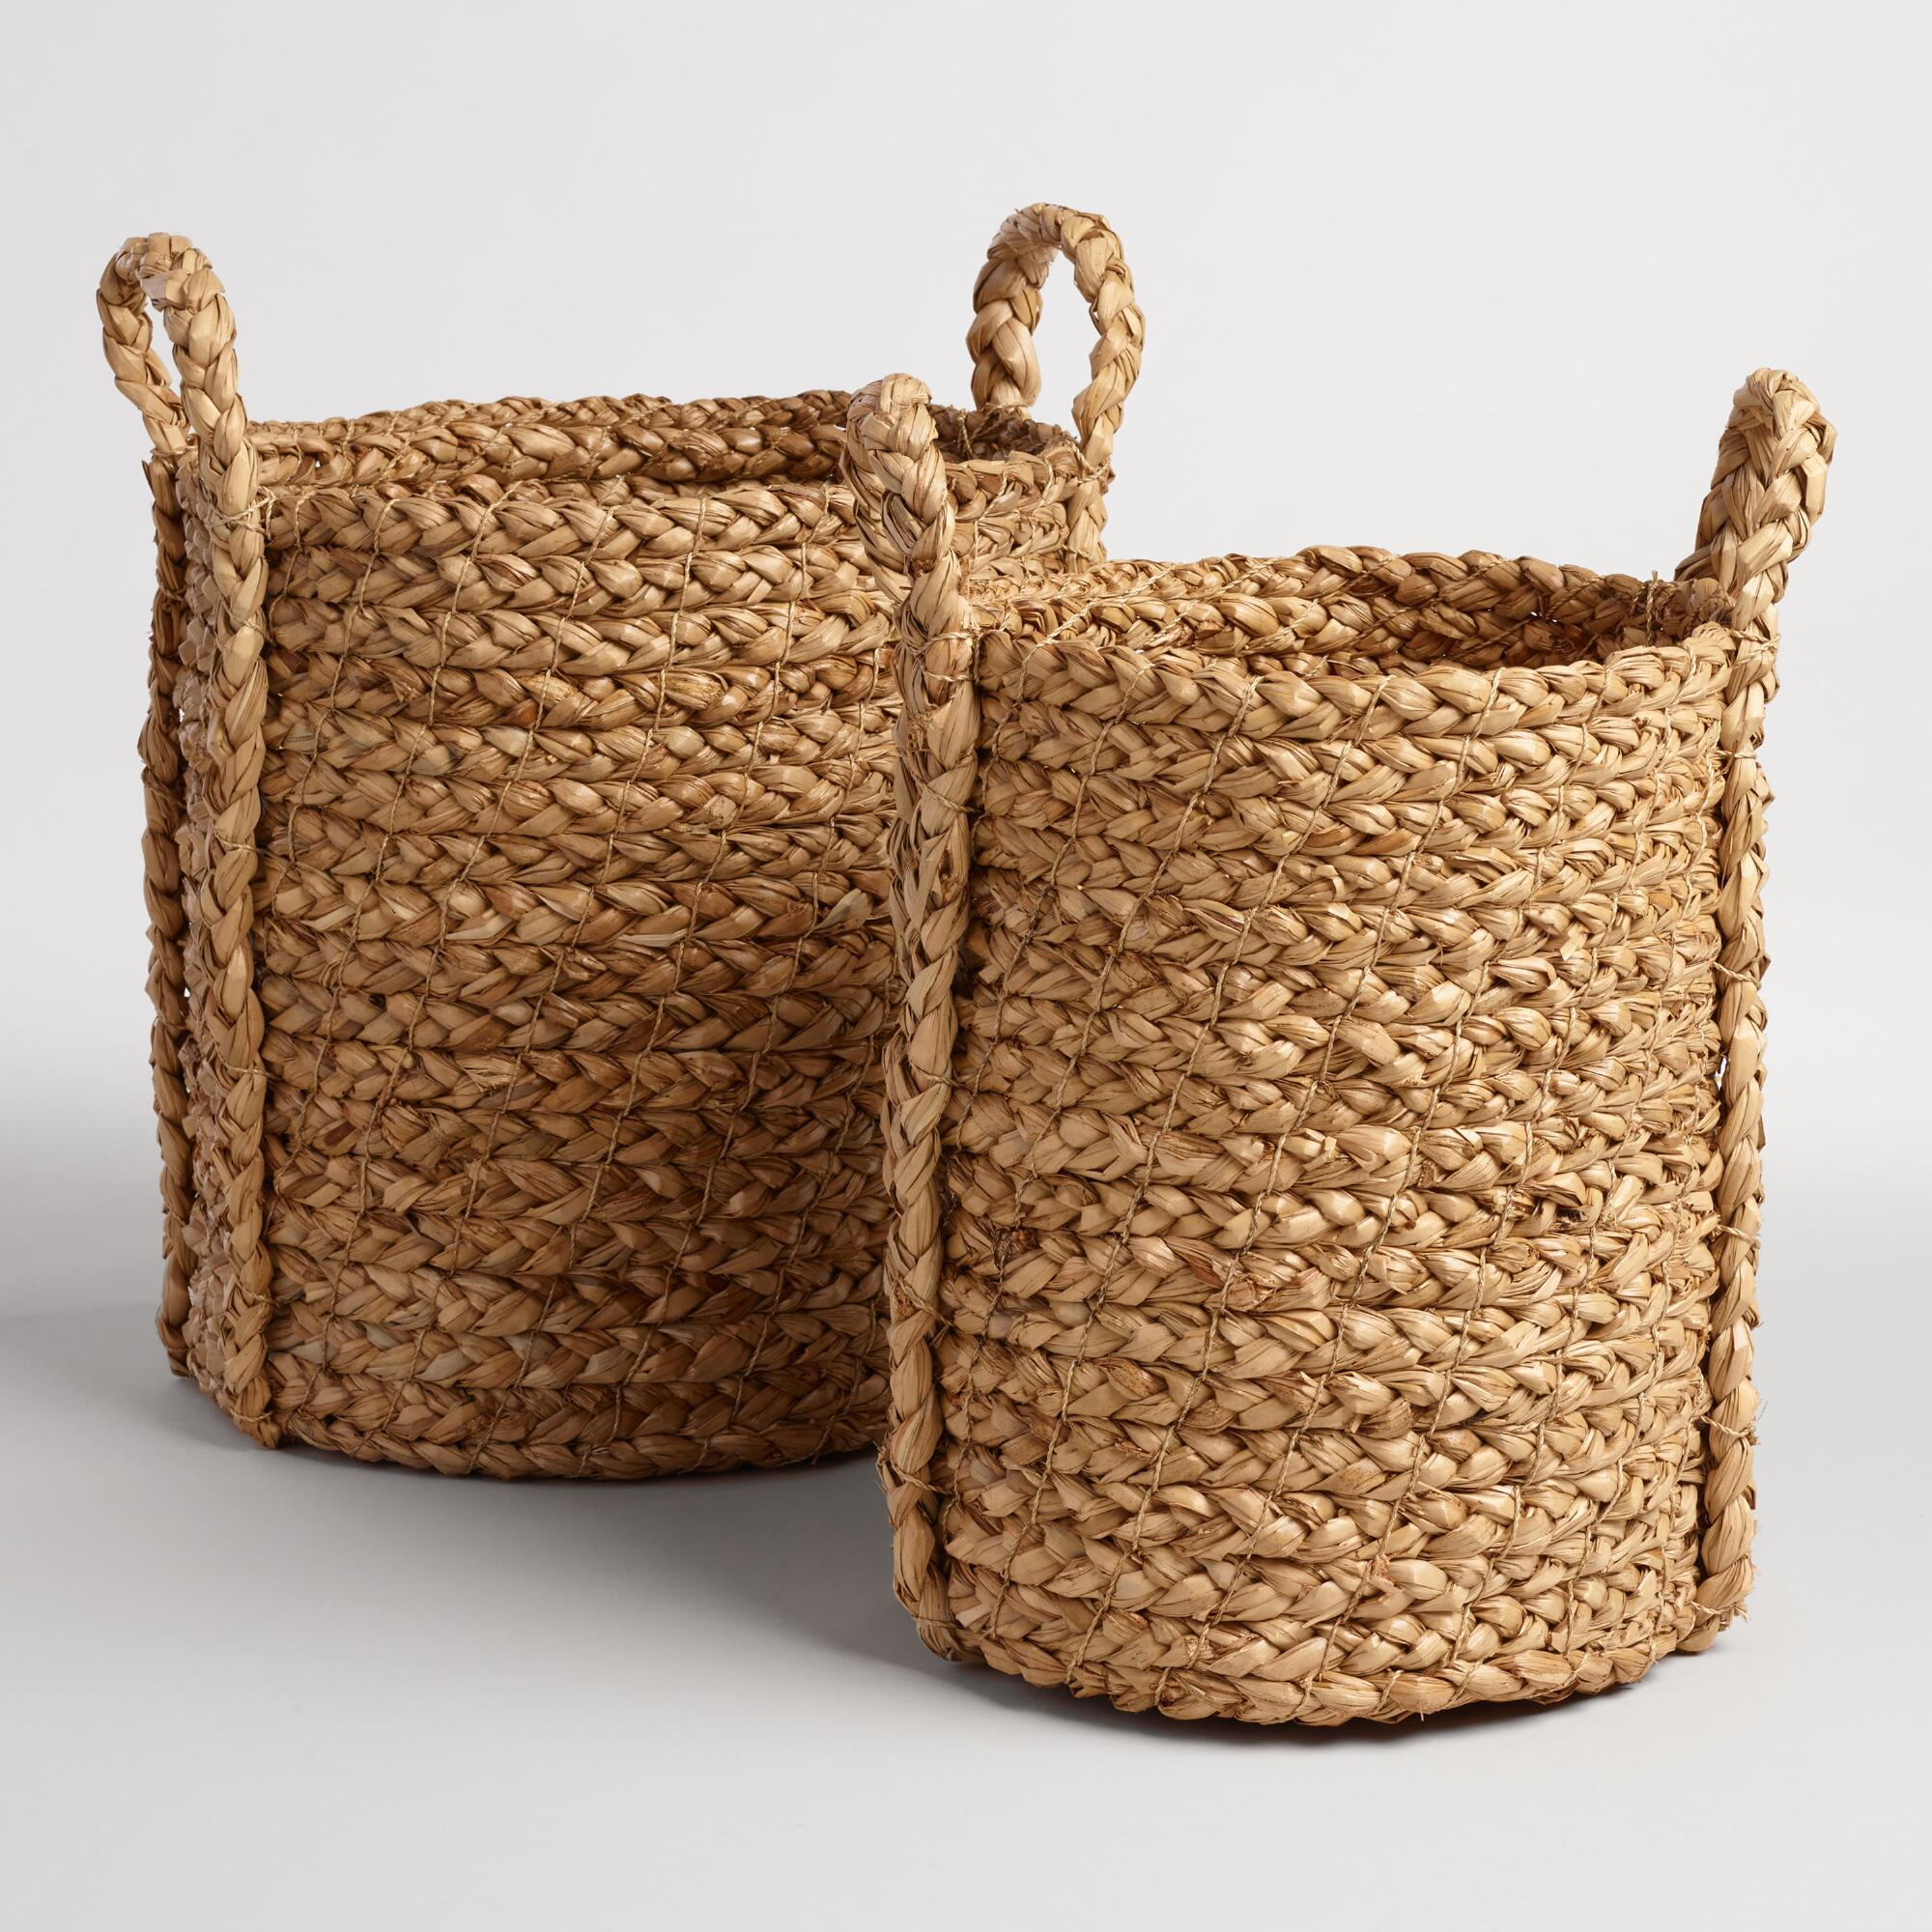 Natural Hyacinth Braided Cameron Tote Baskets - Natural Fiber - Medium by World Market Medium